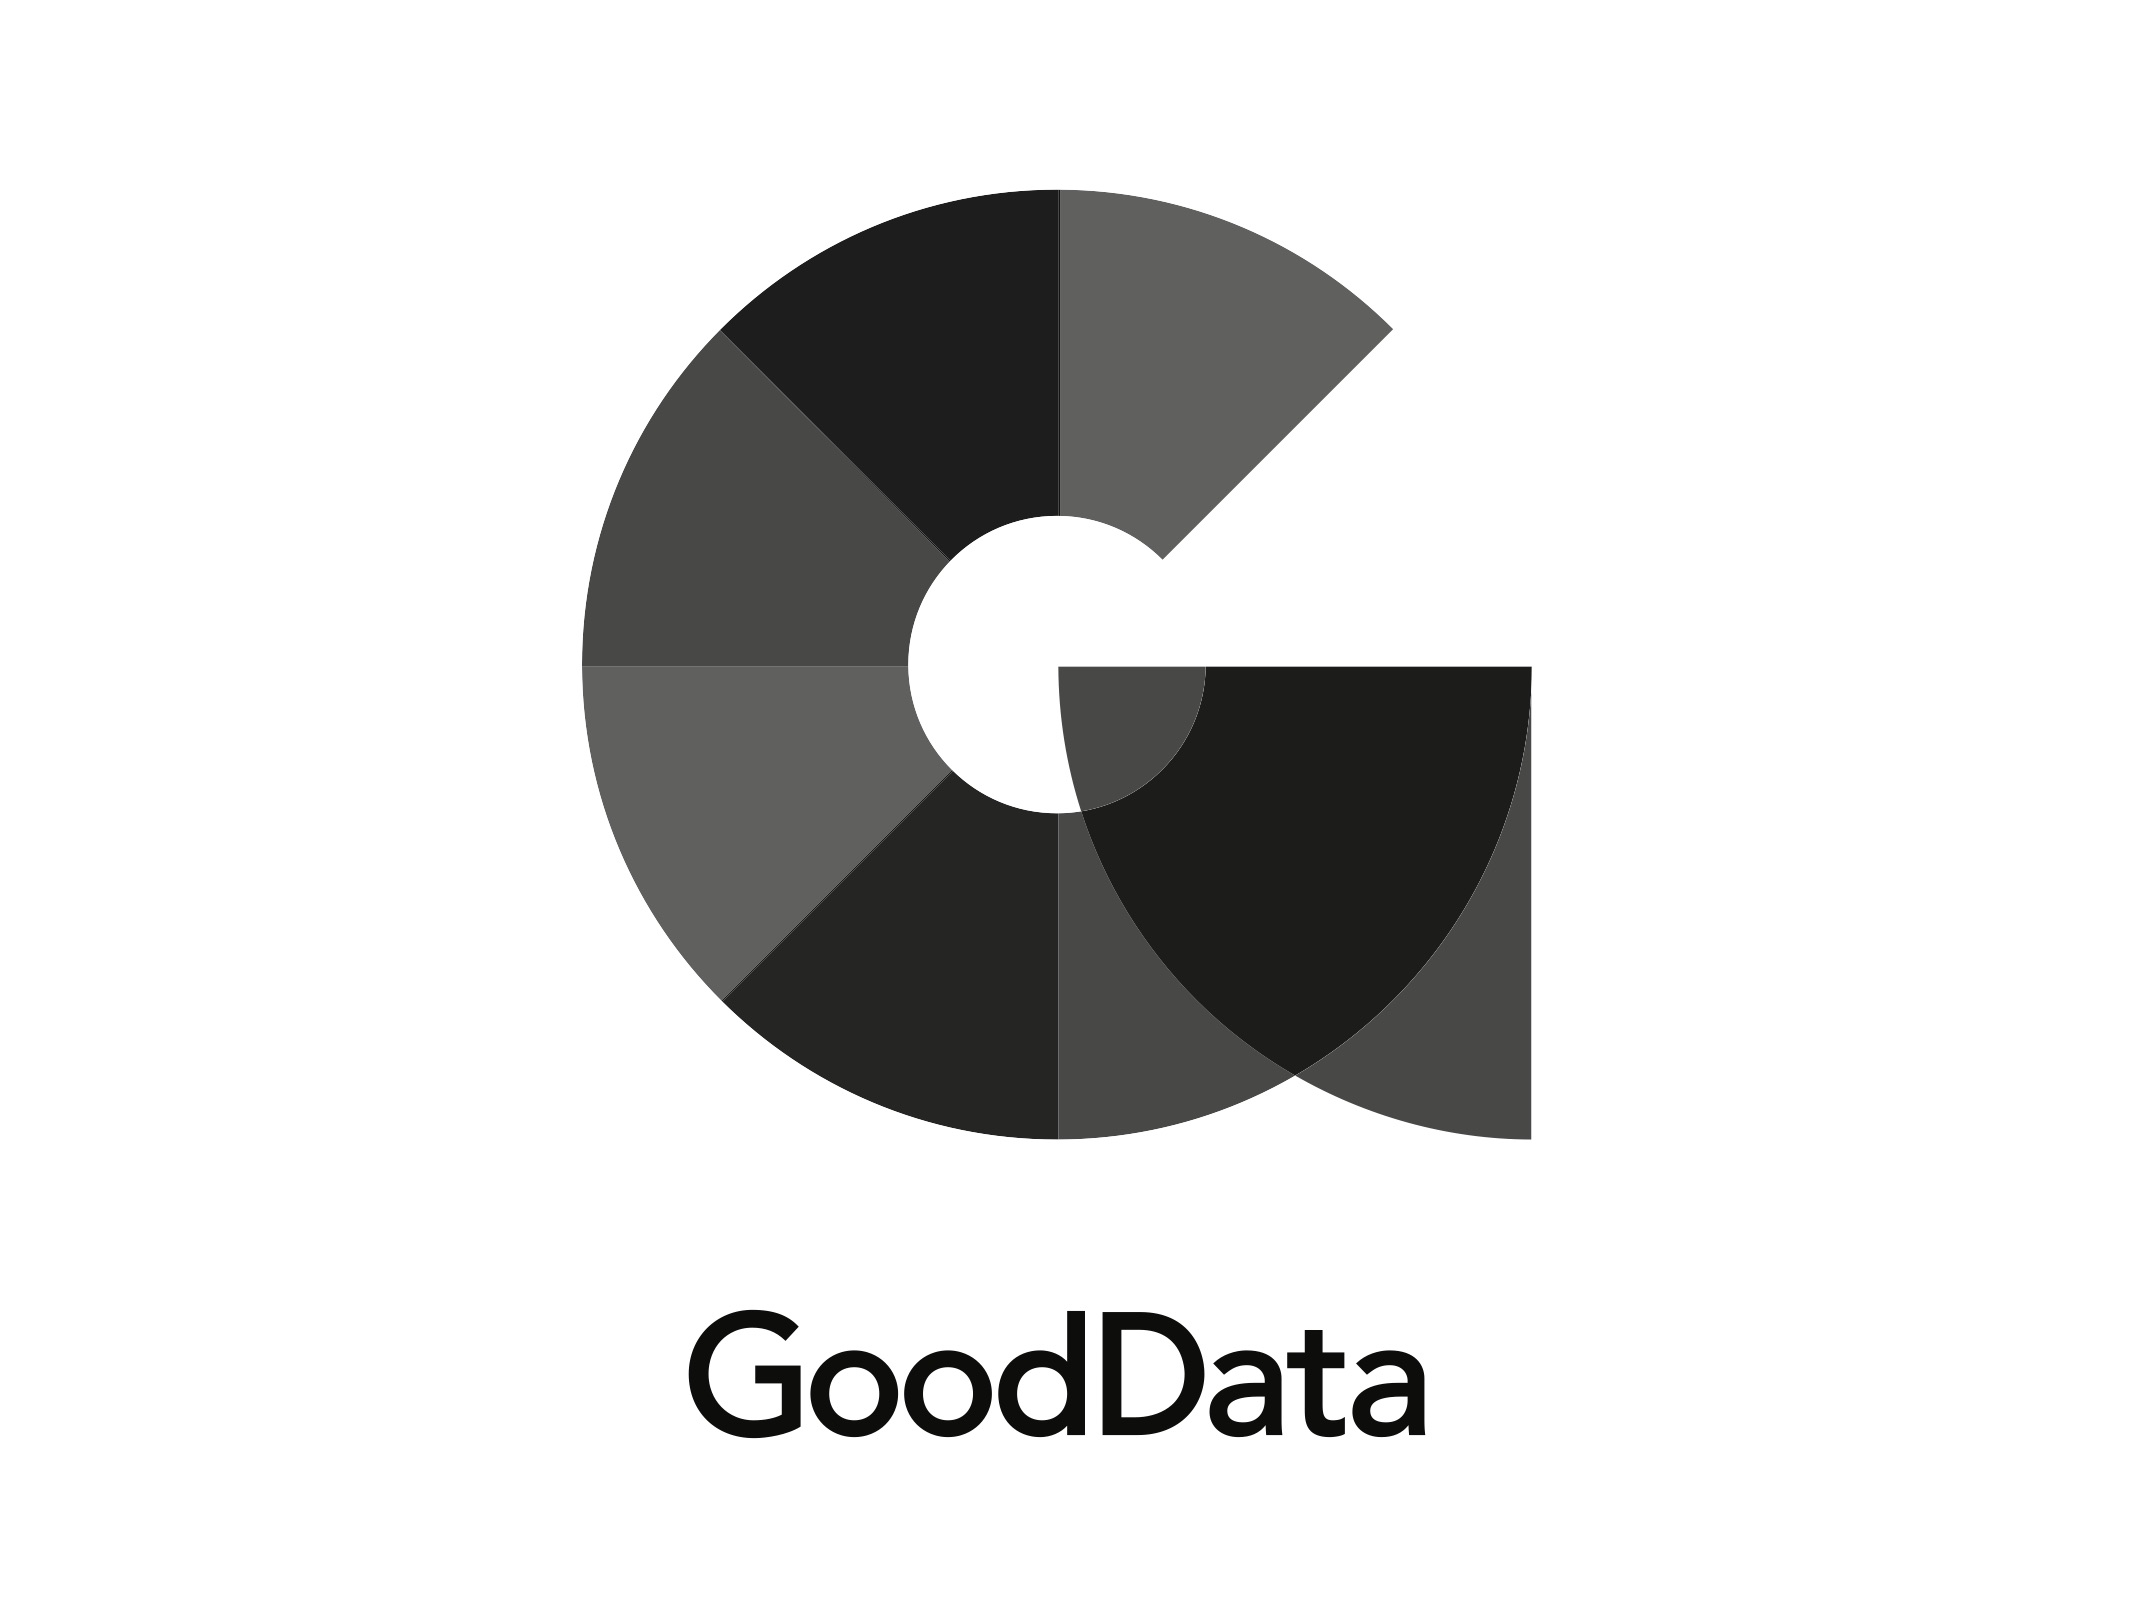 Gooddata vertical black